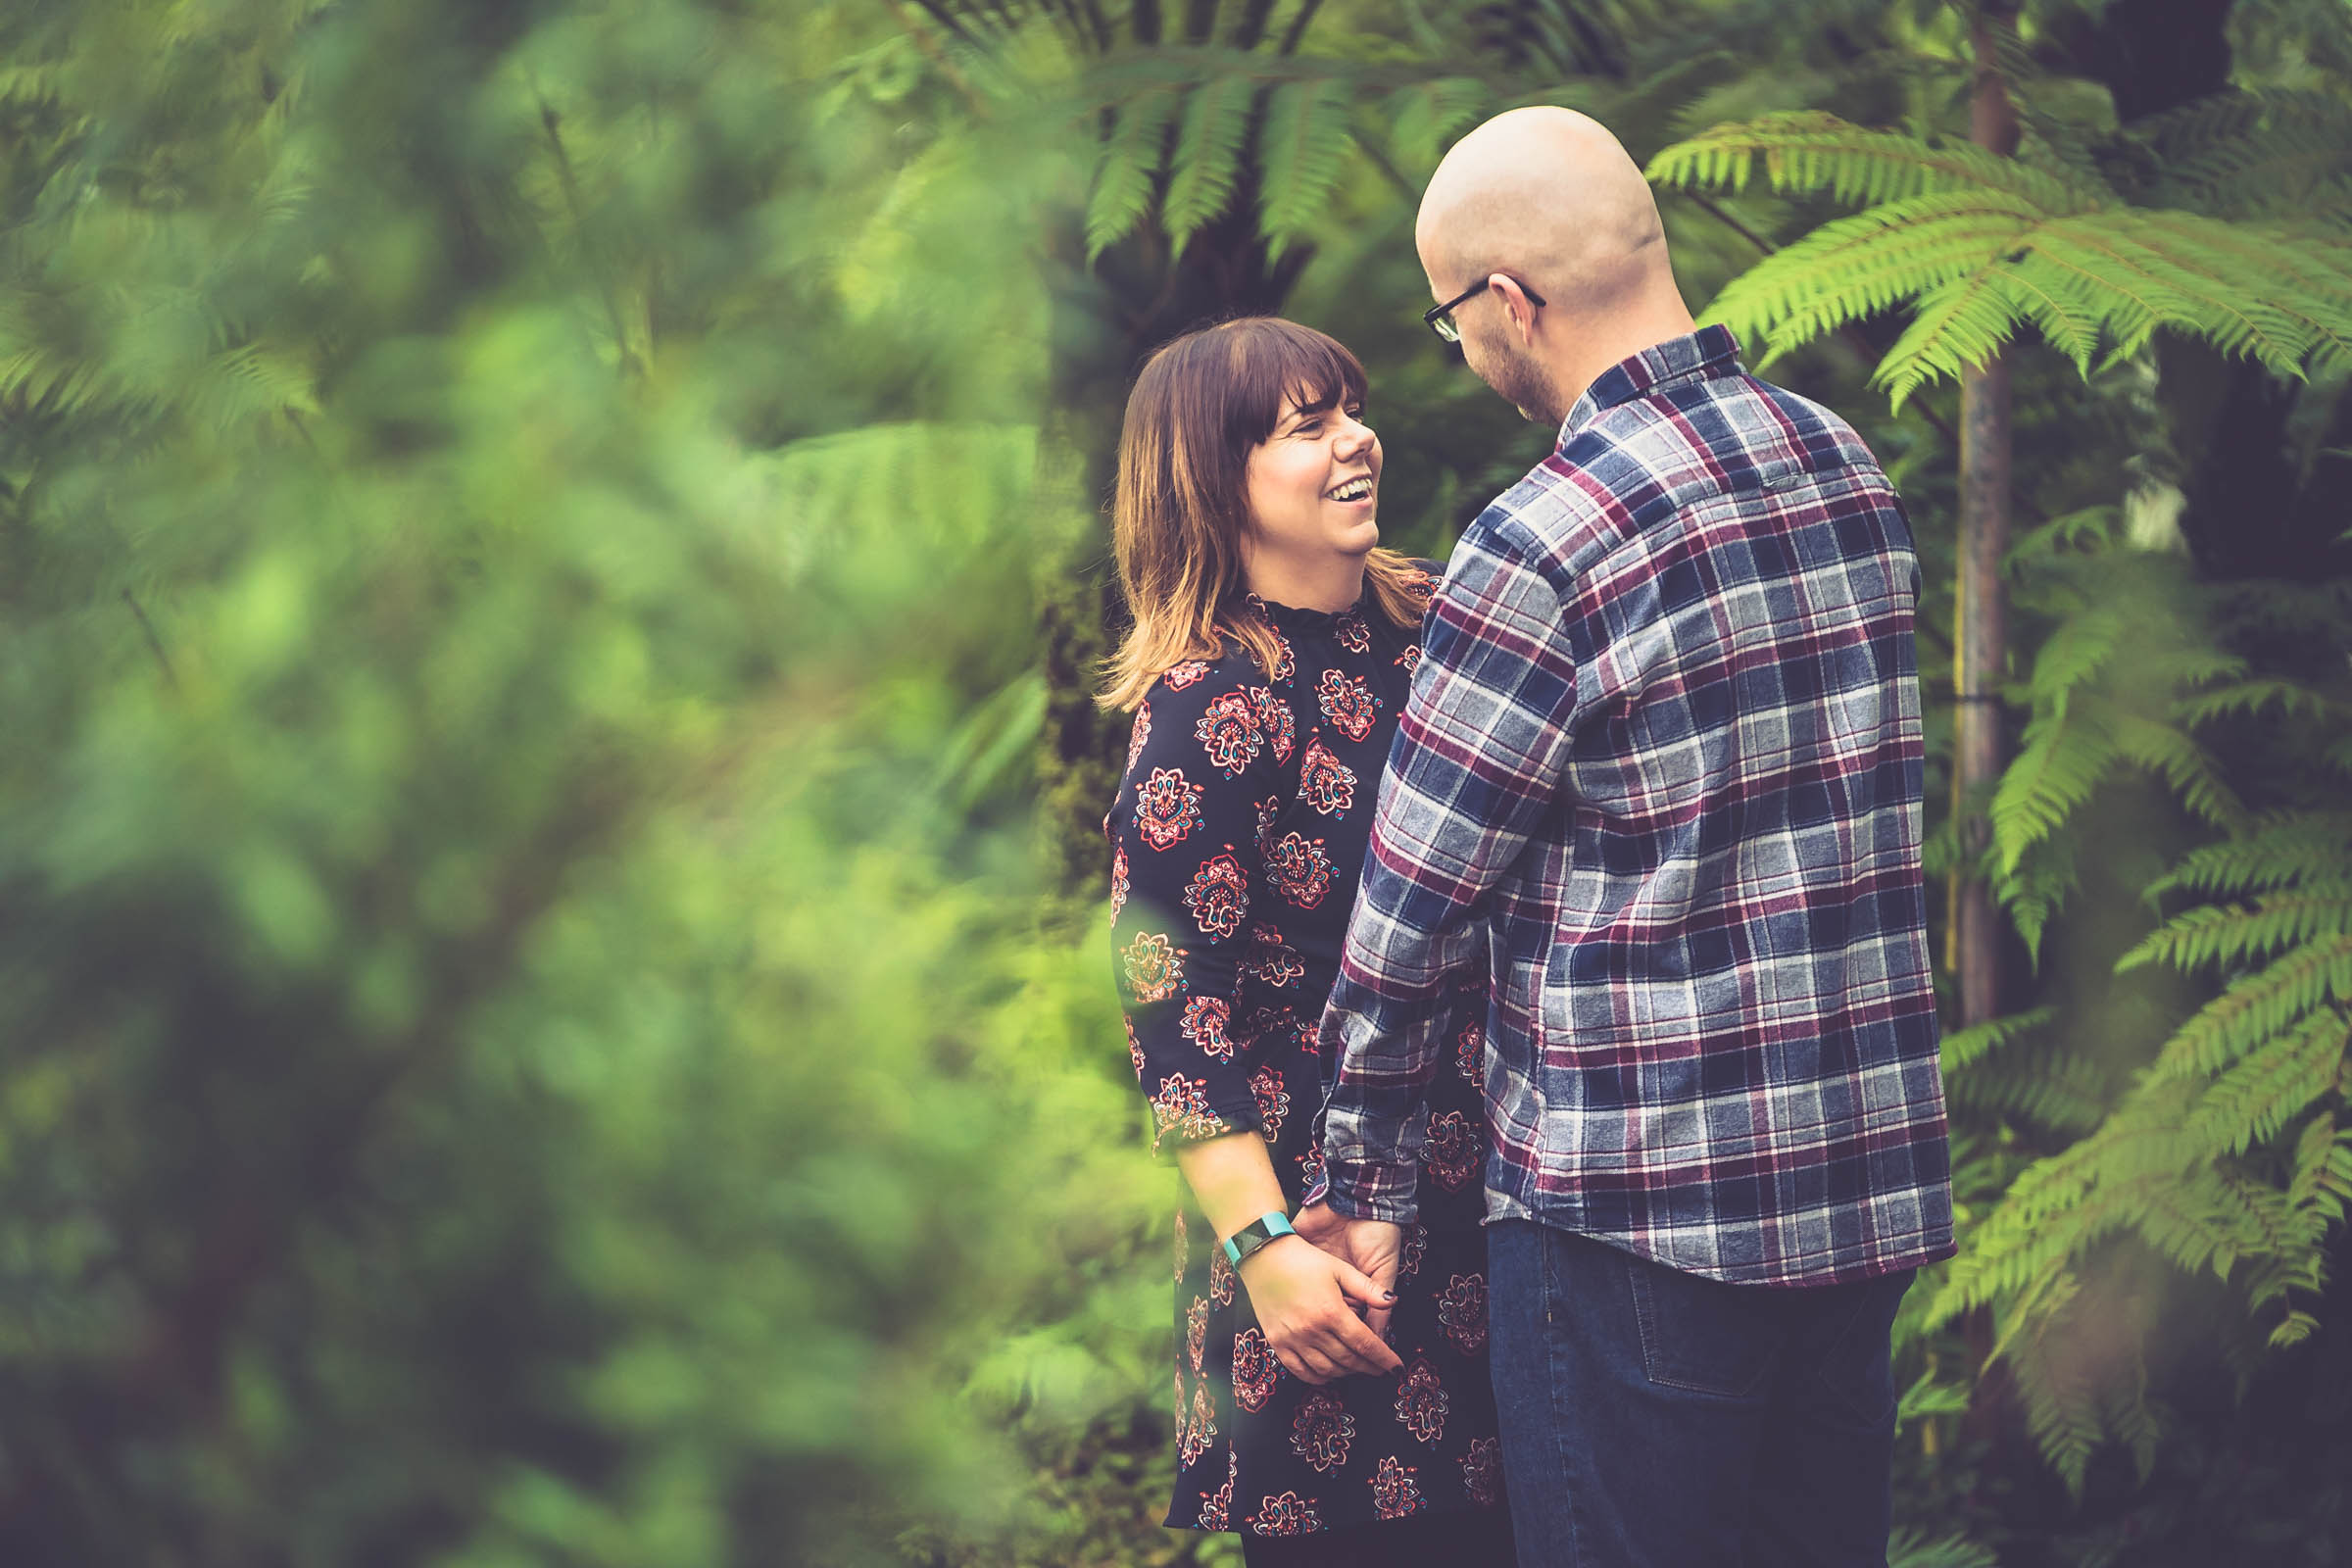 scottish-engagement-photography-elopement-dearlyphotography (32 of 45).jpg